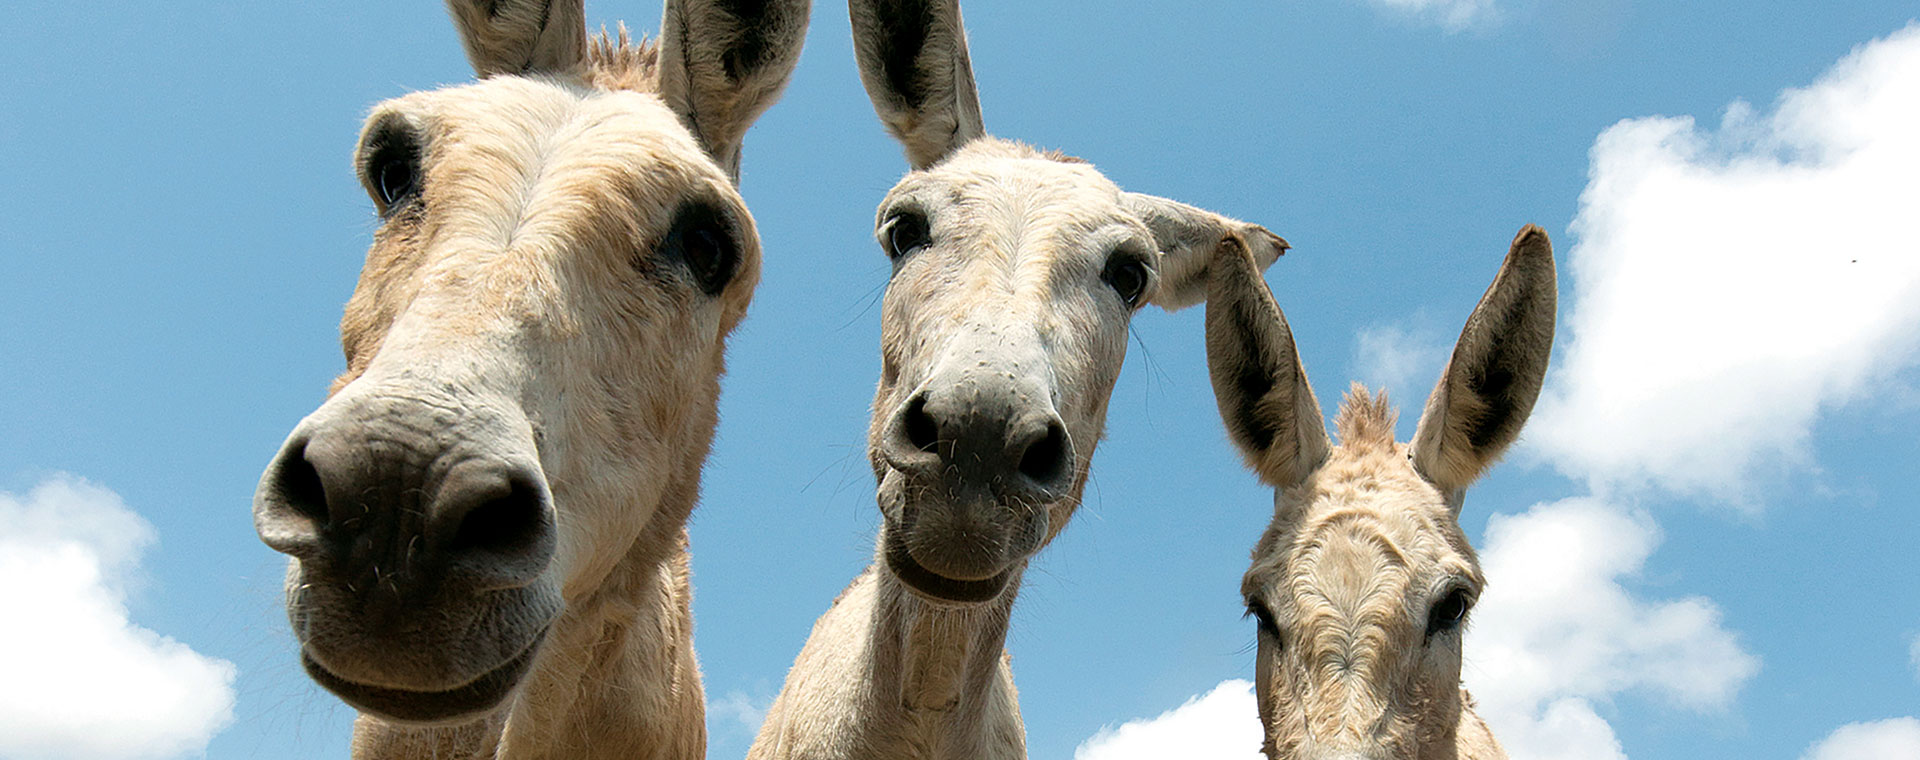 Headshot of donkeys